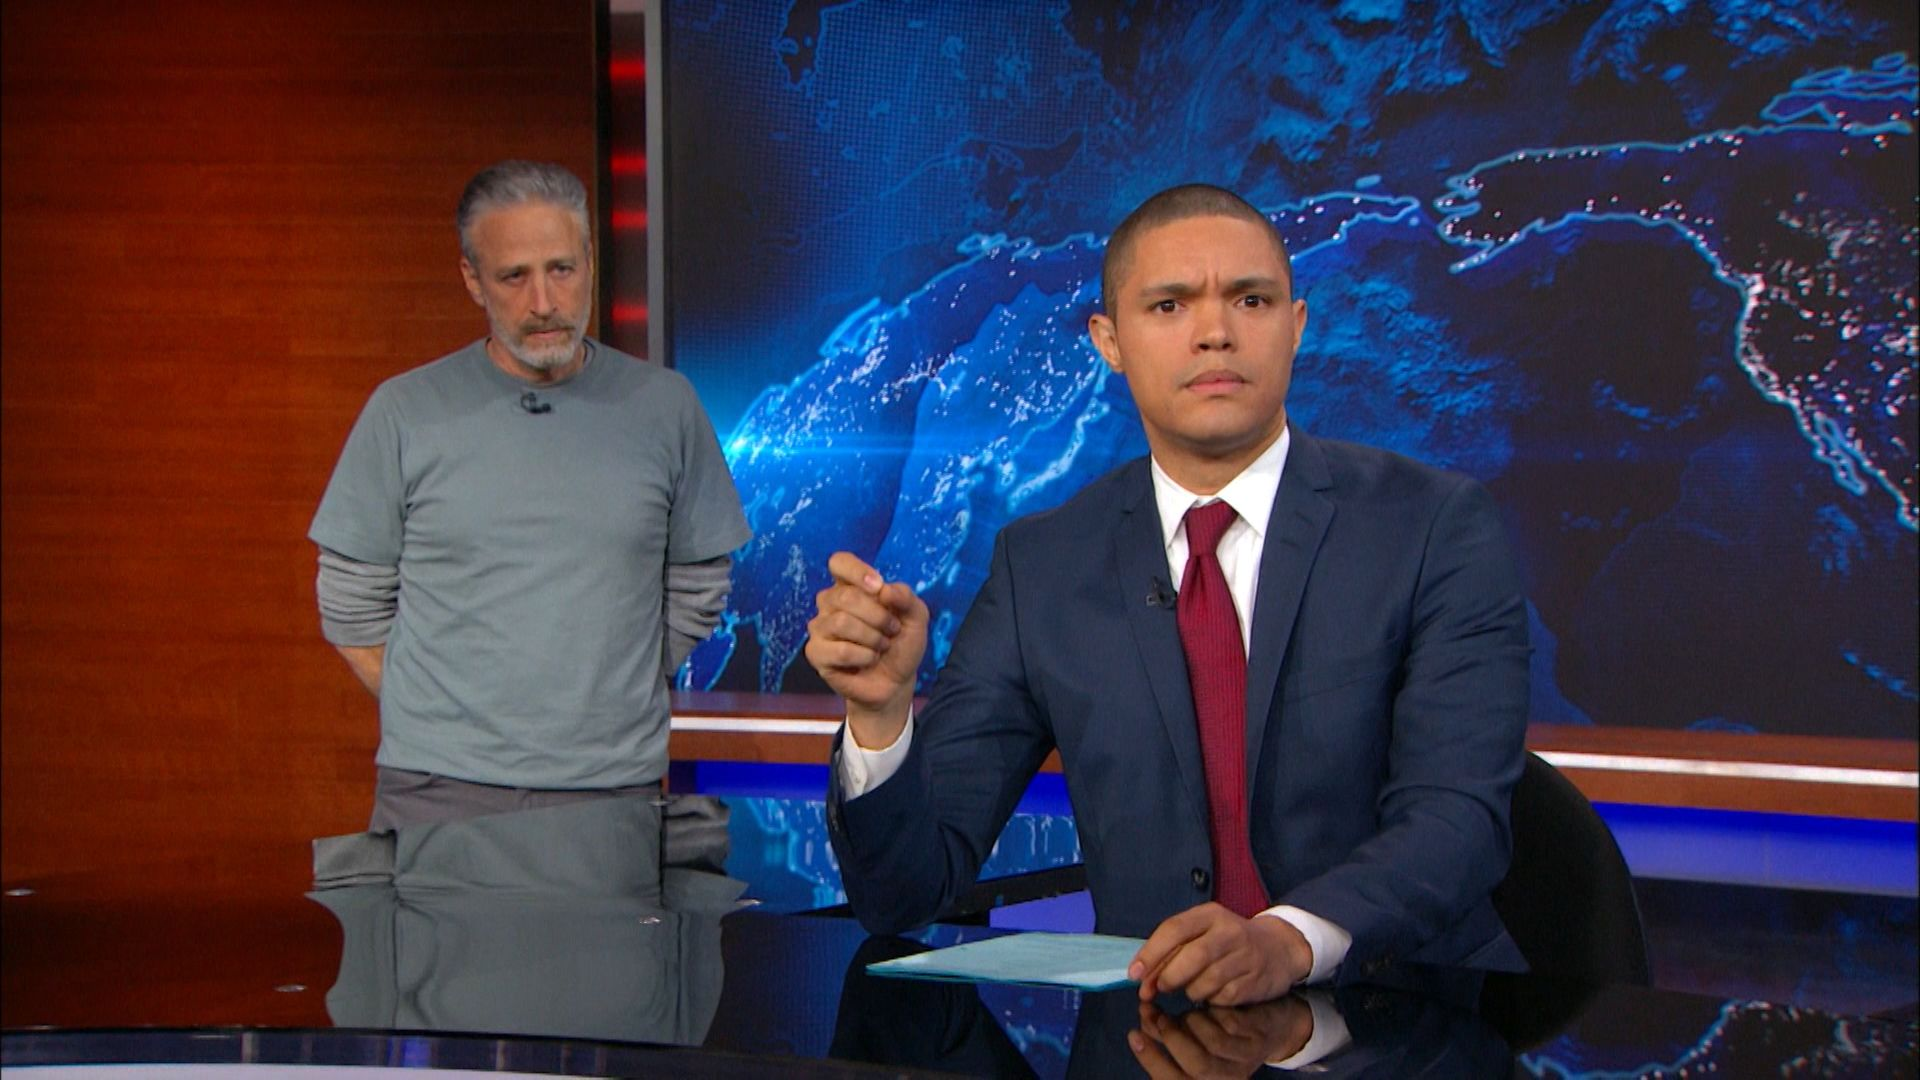 The Daily Show with Trevor Noah - December 7, 2015 - Jon Stewart - Full Episode | Comedy Central